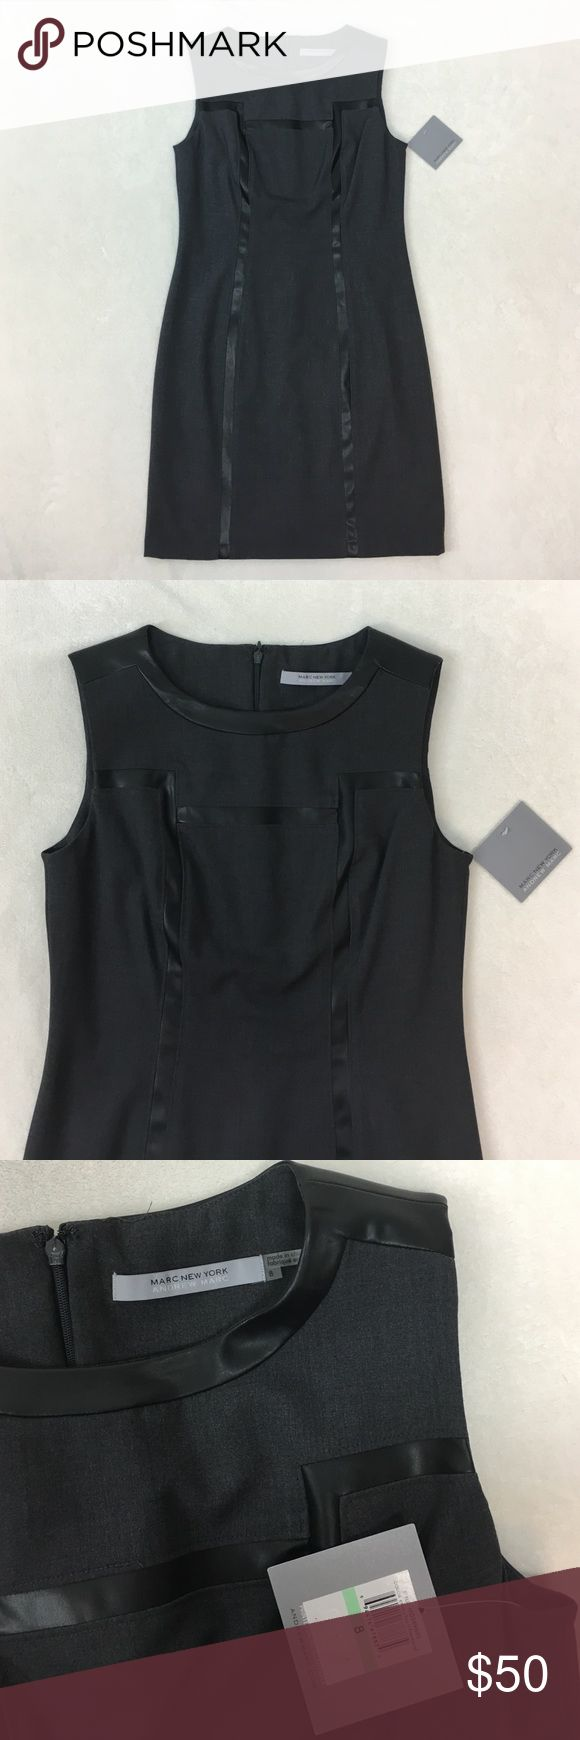 "NWT Andrew Marc New York Gray Sleeveless Dress 8 New with tags Marc New York Andrew Marc  Gray Dress  Womens Size 8 - bust measures 18"" across, 35.5"" long Andrew Marc Dresses Mini"